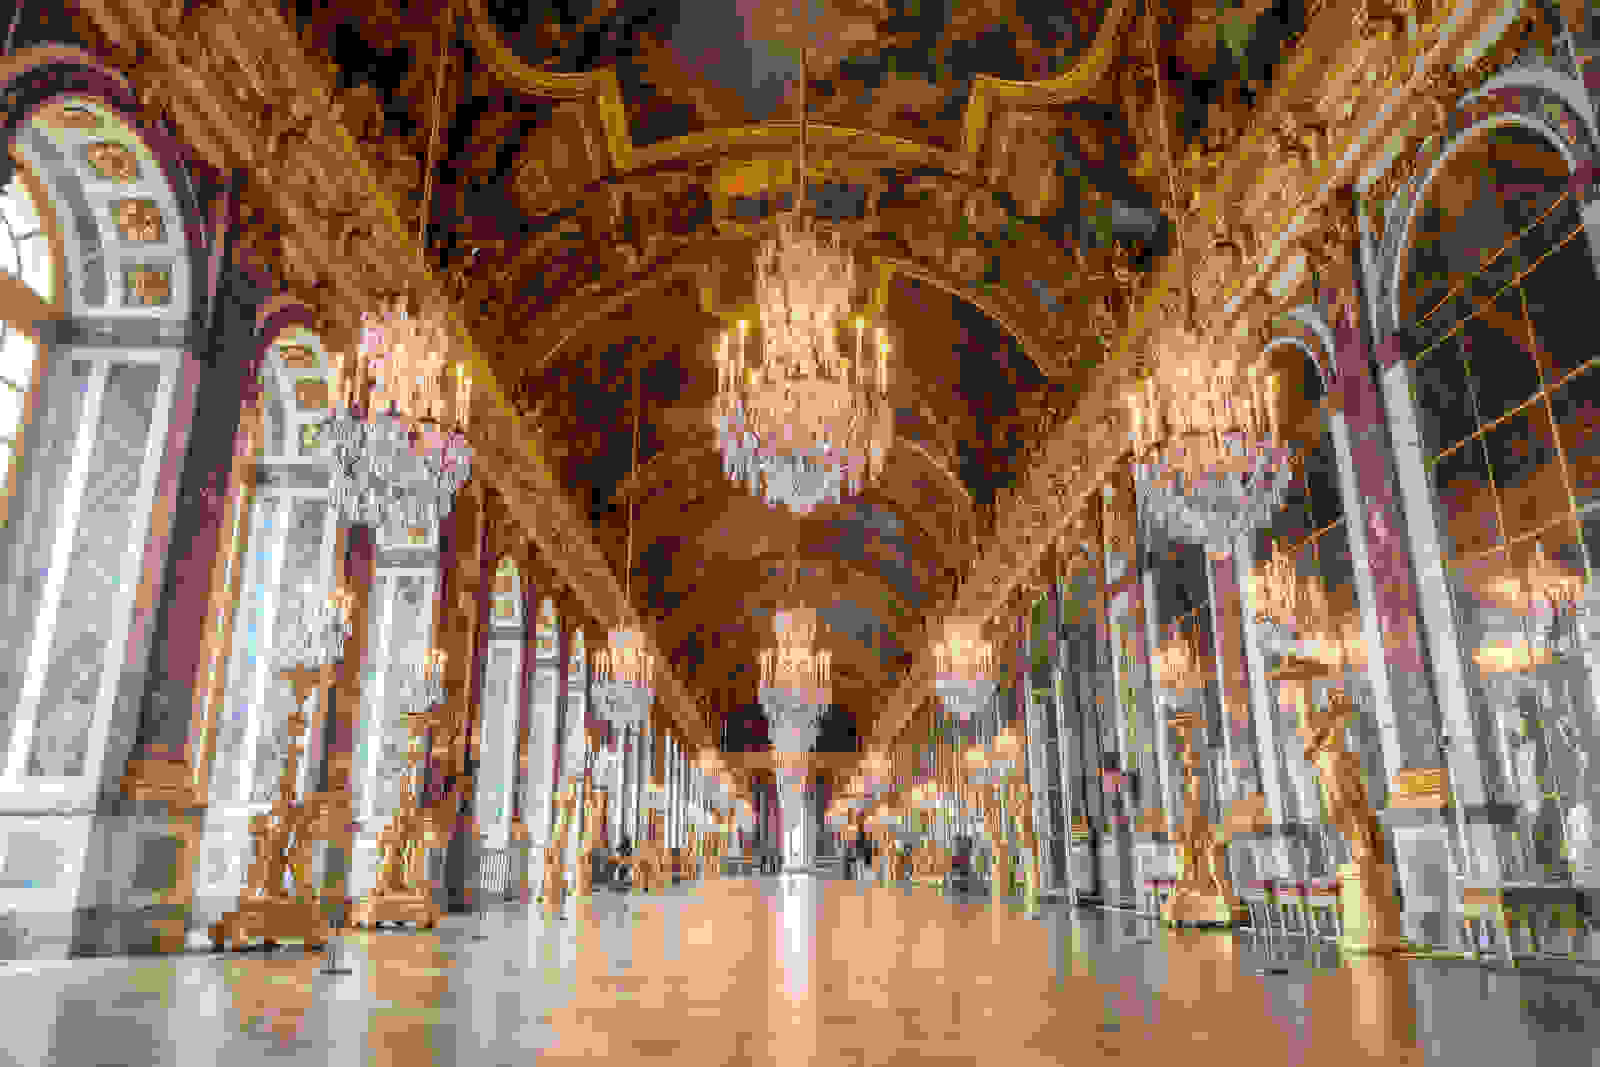 Hall of Mirrors in Palace of Versailles (1678-86) | Source: britannica.com